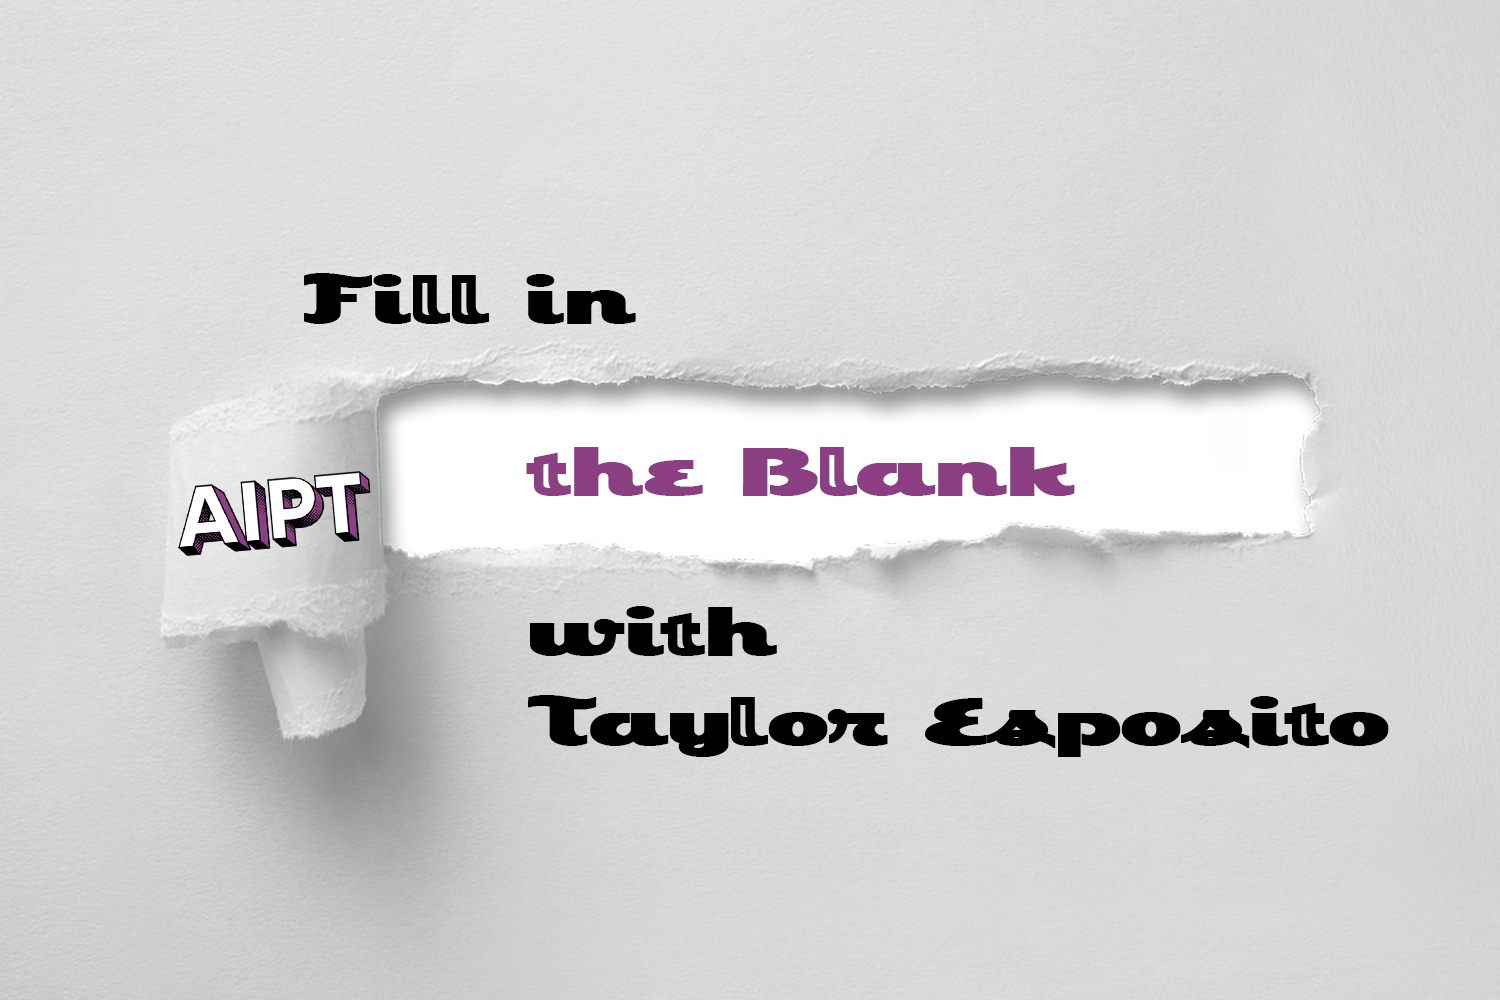 Fill in the Blank: Taylor Esposito